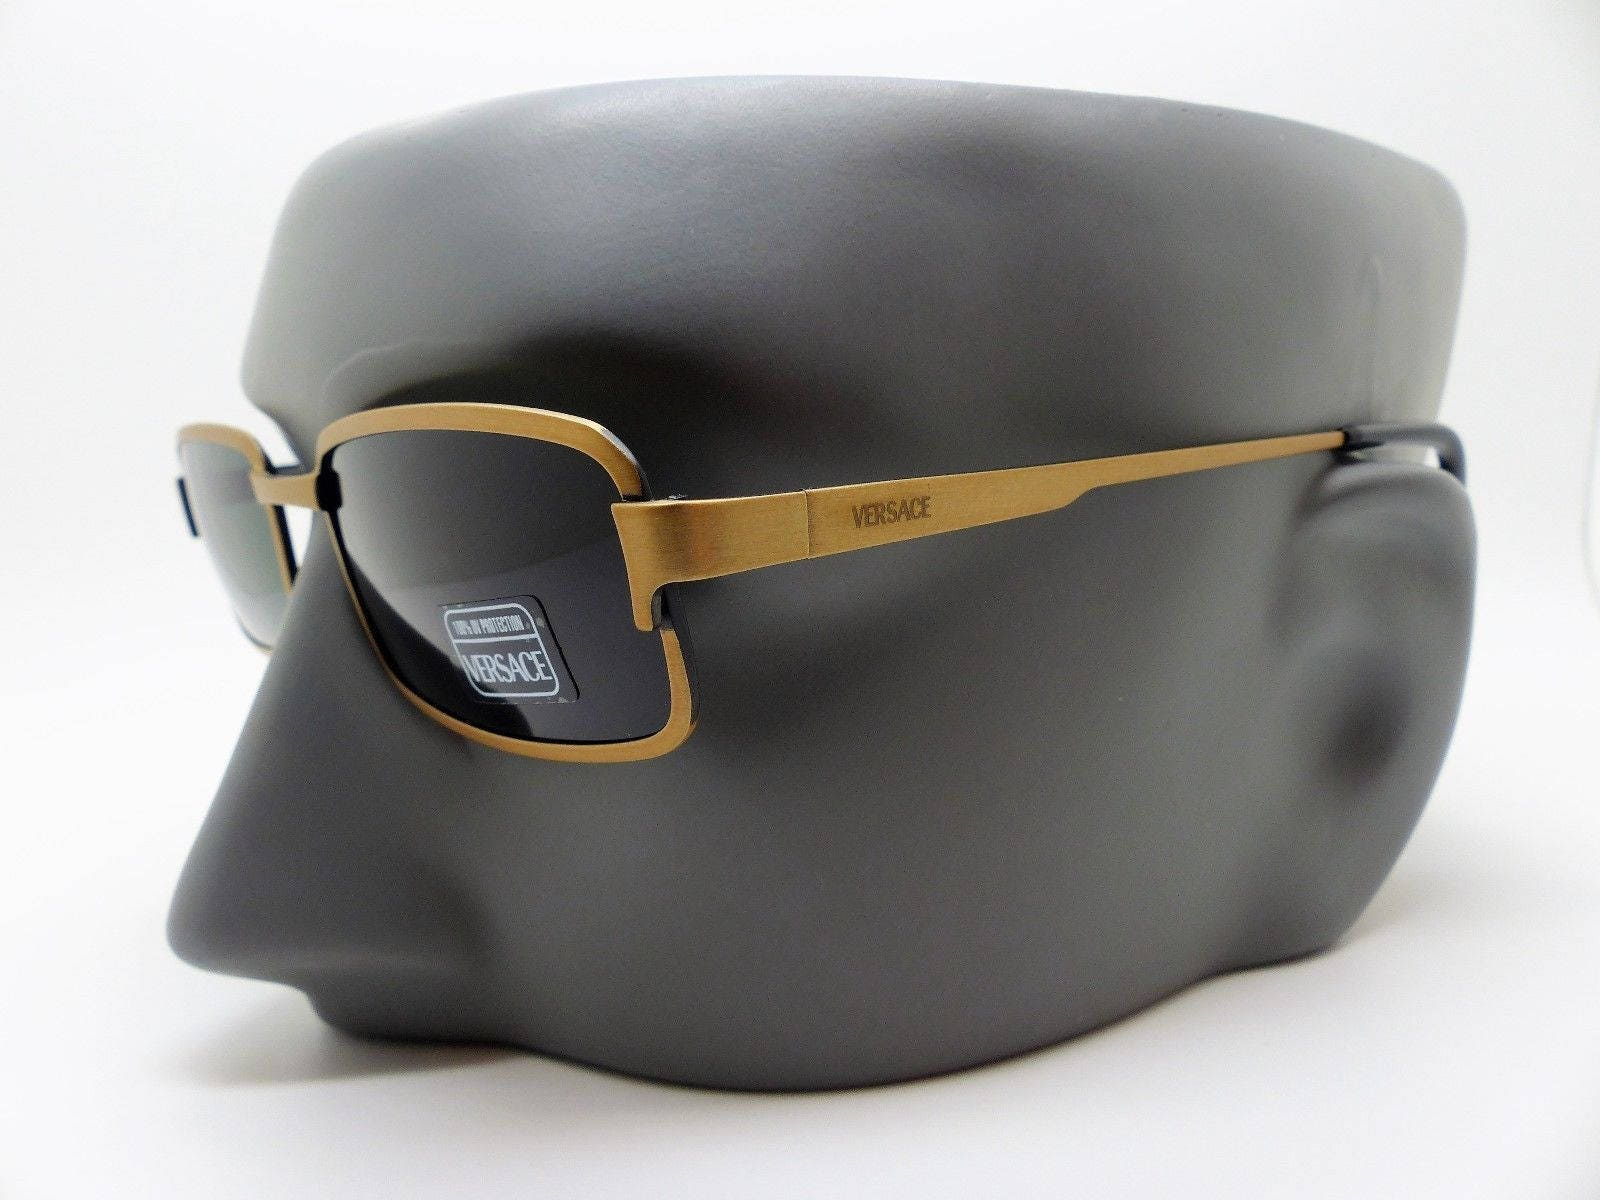 65d63ab065 Gianni Versace Sunglasses Mod 675 Related Keywords   Suggestions ...